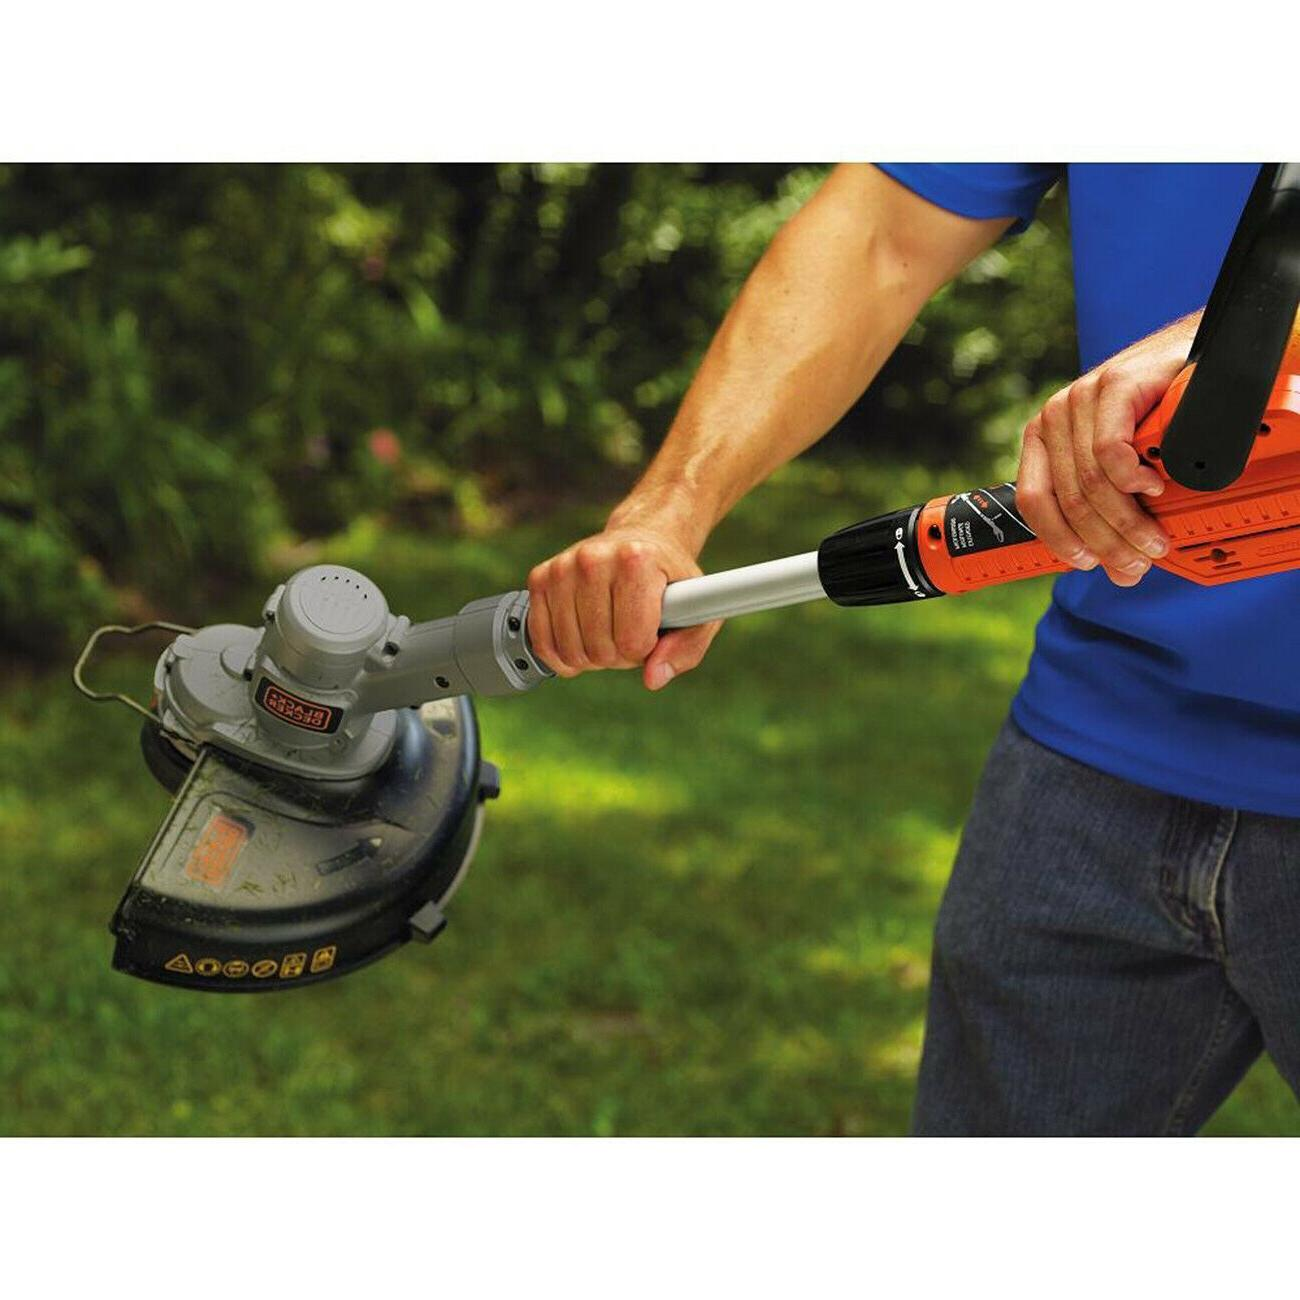 Black and Cordless Weed Eater String Trimmer Lawn New